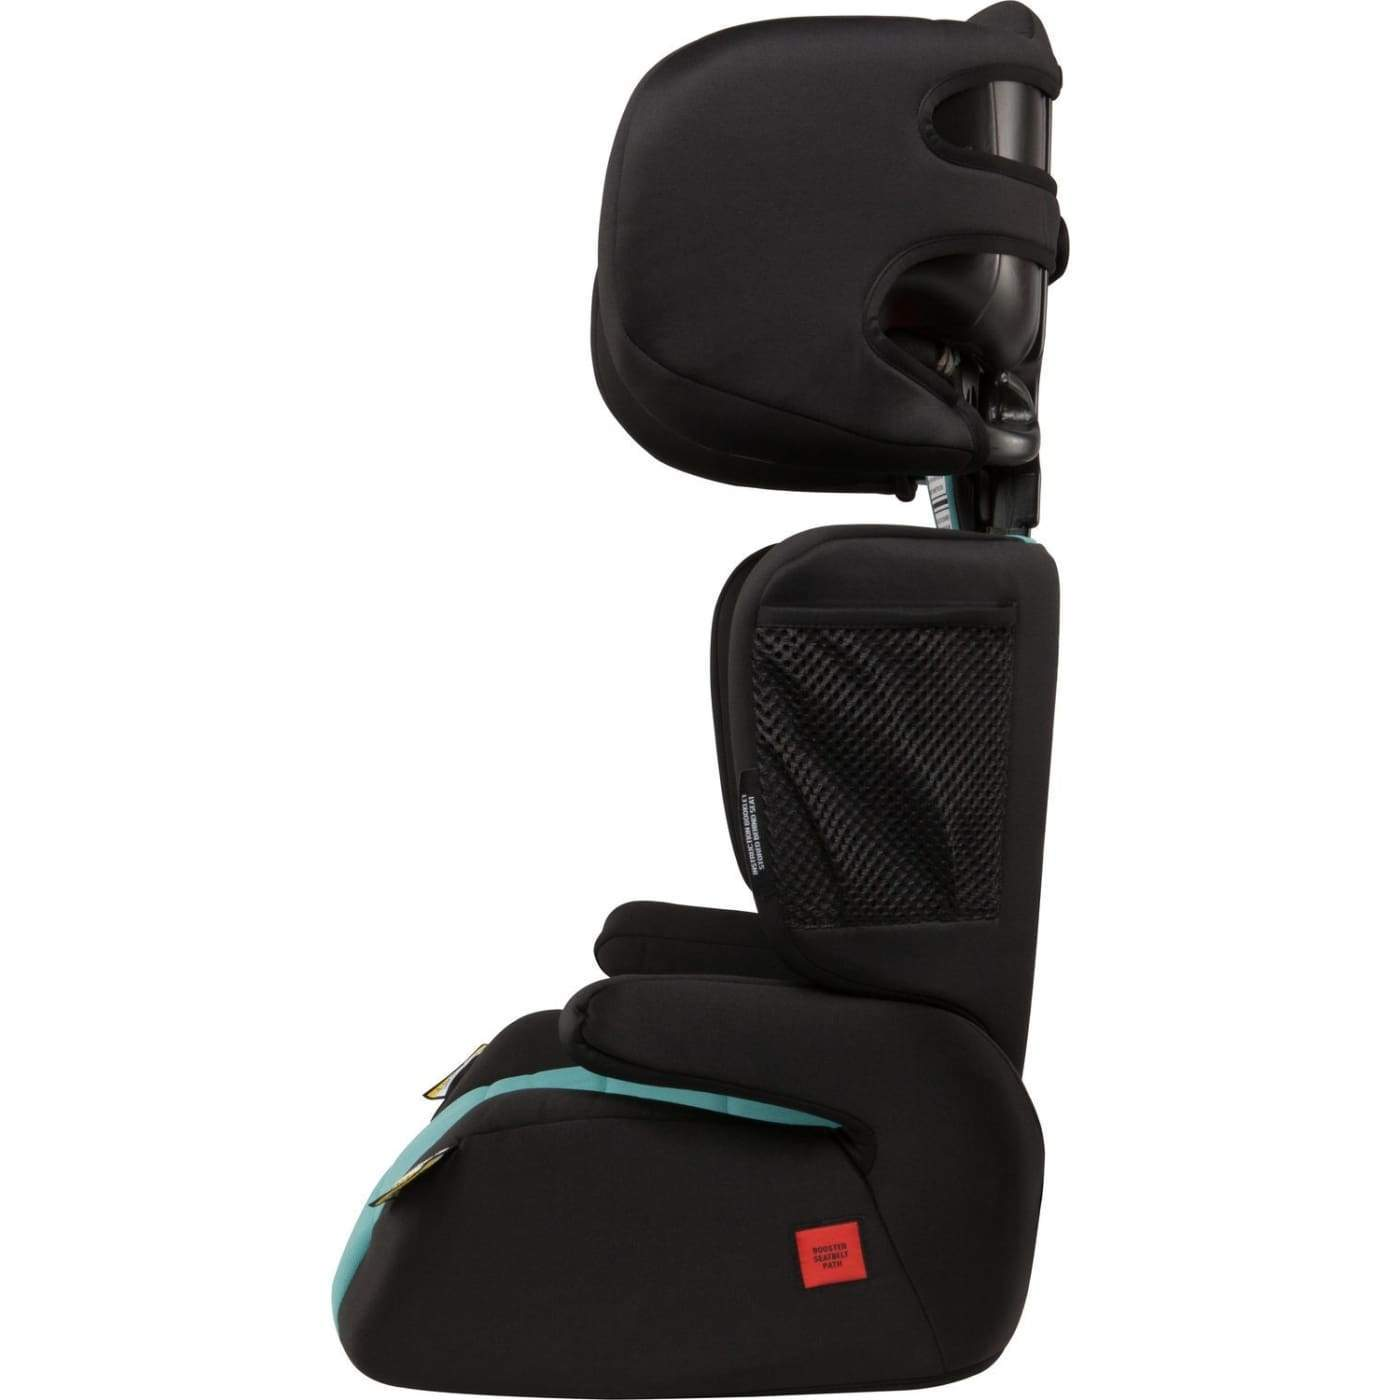 InfaSecure Astra Vario II Booster 4-8YR - Aqua - CAR SEATS - BOOSTERS (4-8YR)